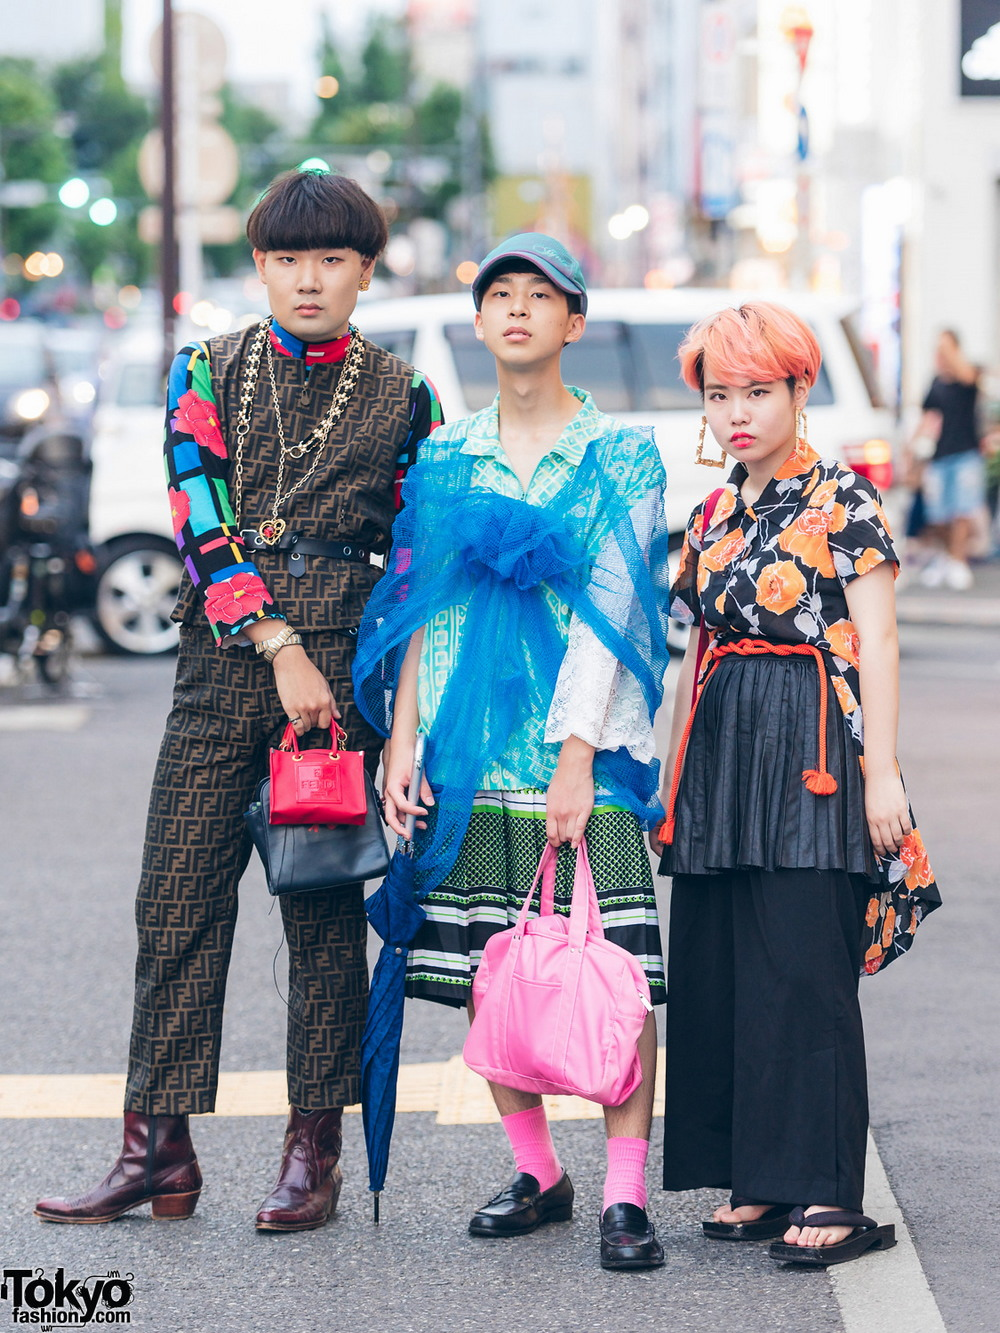 virgins-japanese-teens-fashion-in-tokyo-from-kimi